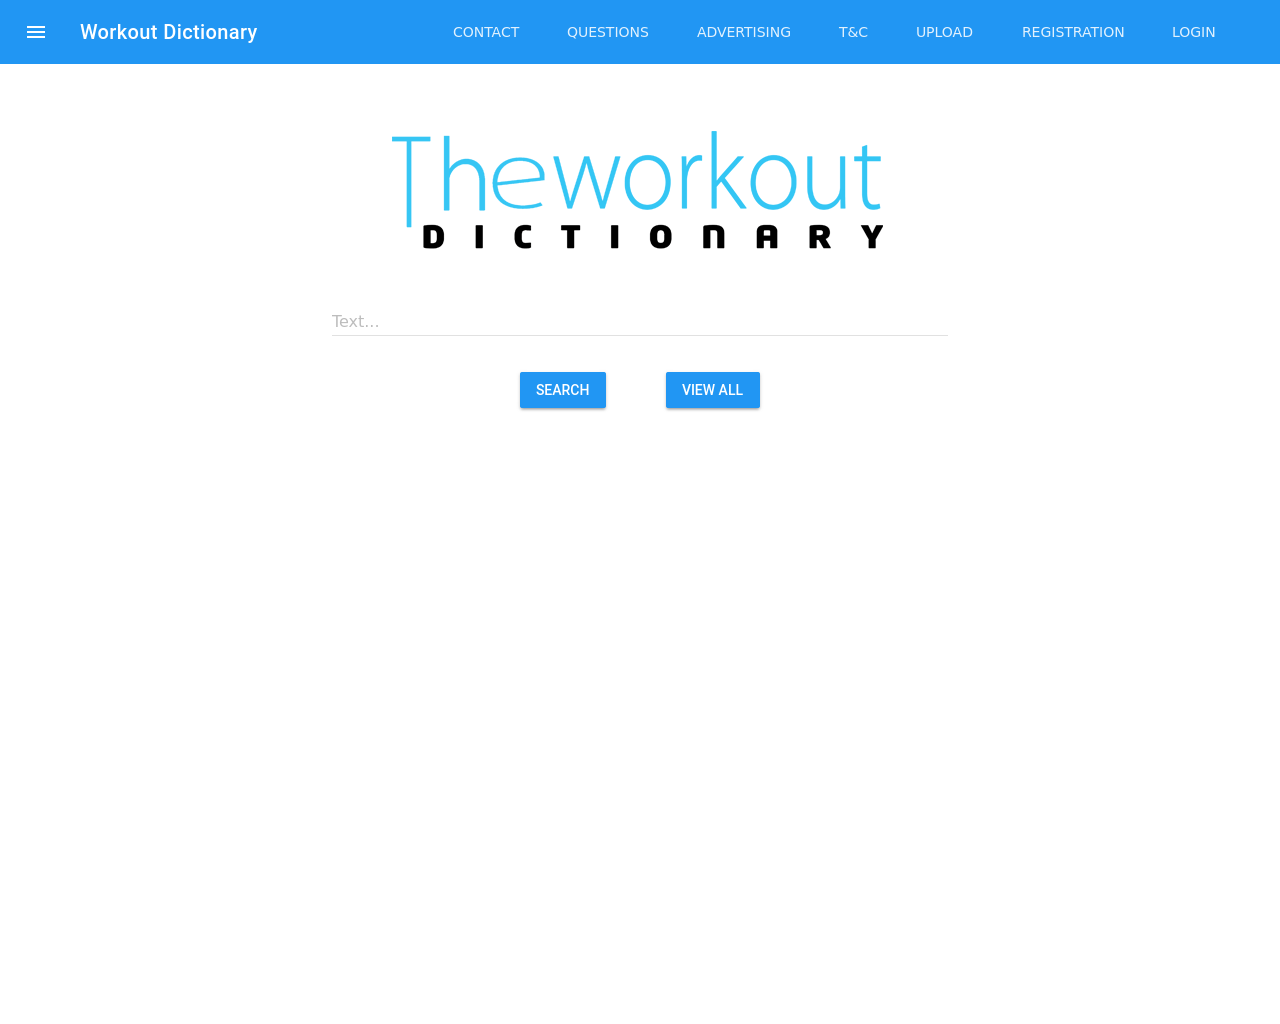 The-Workout-Dictionary-Advertising-Reviews-Pricing